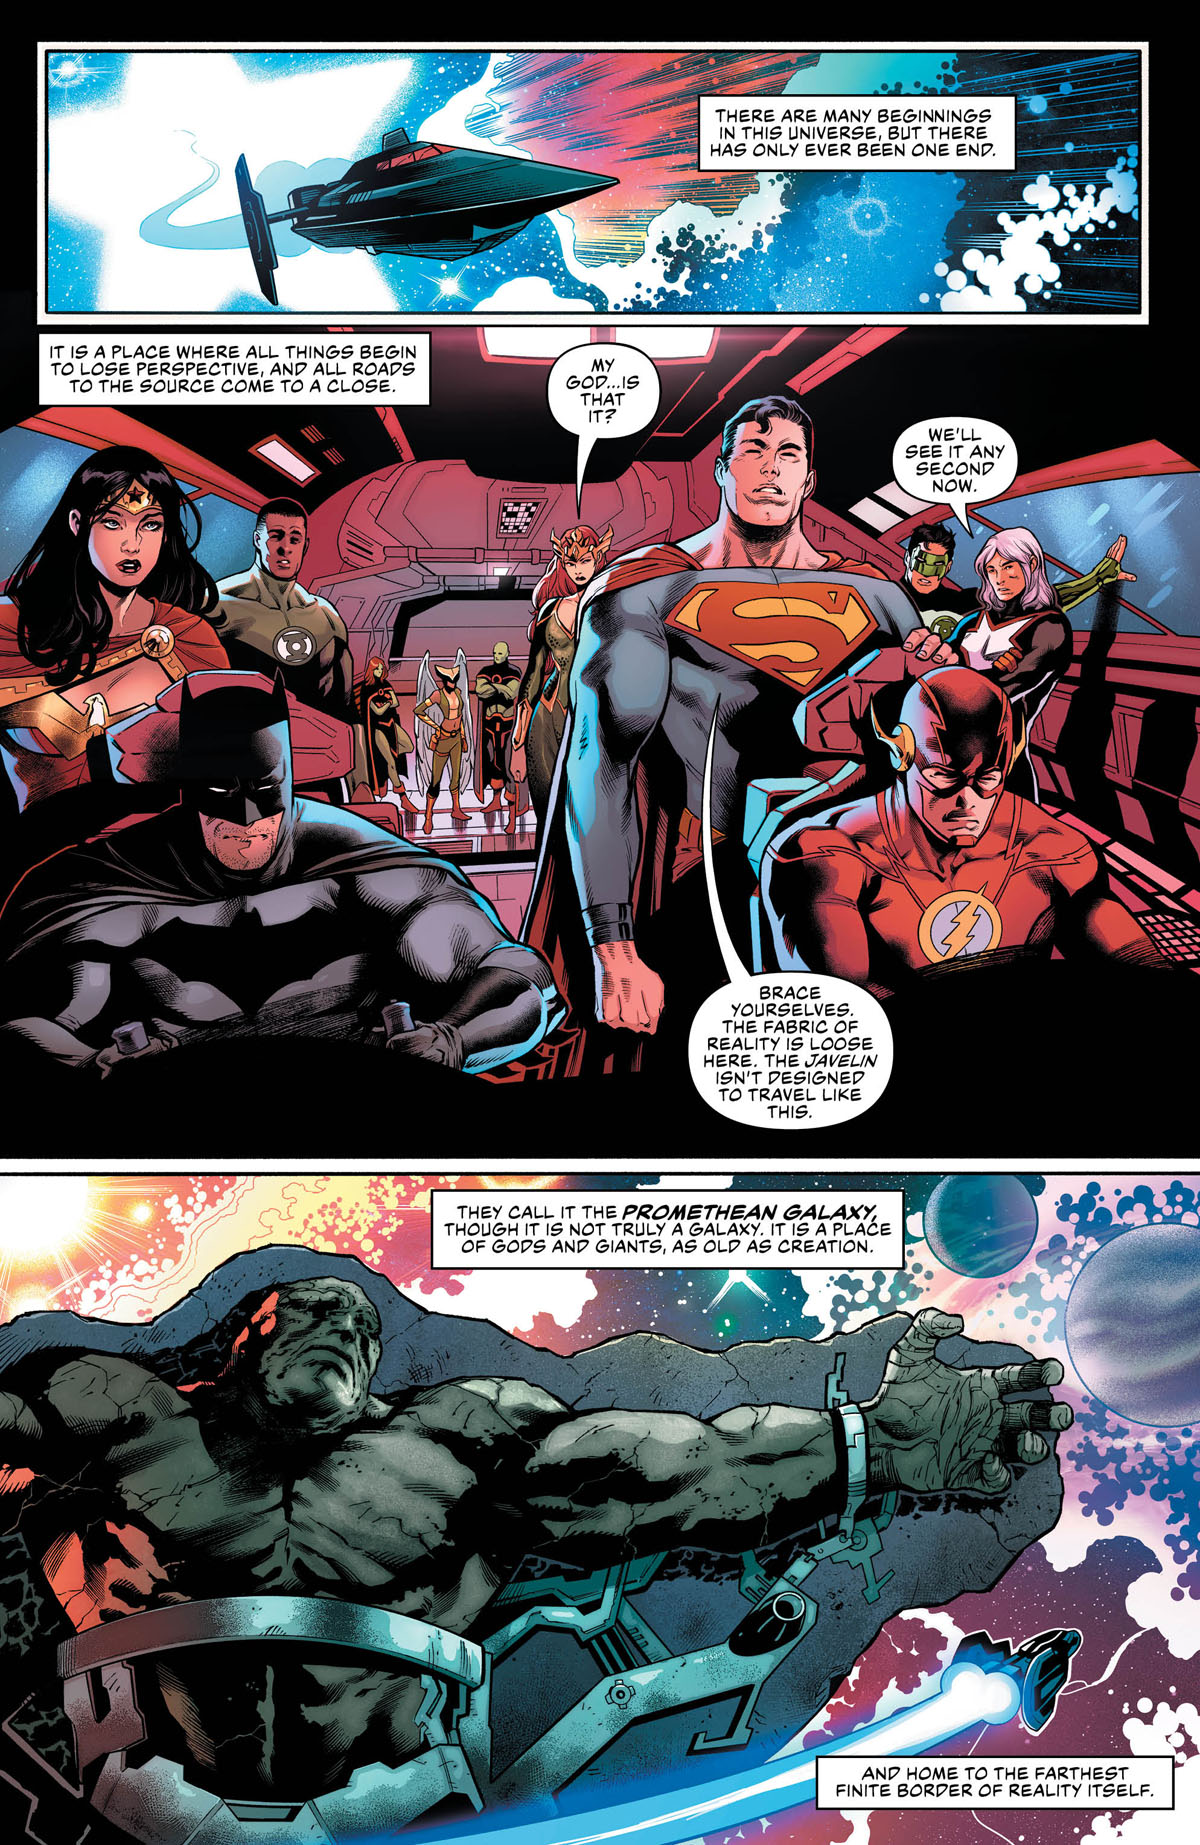 Scott Snyder & James Tynion IV Take Us Beyond Justice League Annual #1